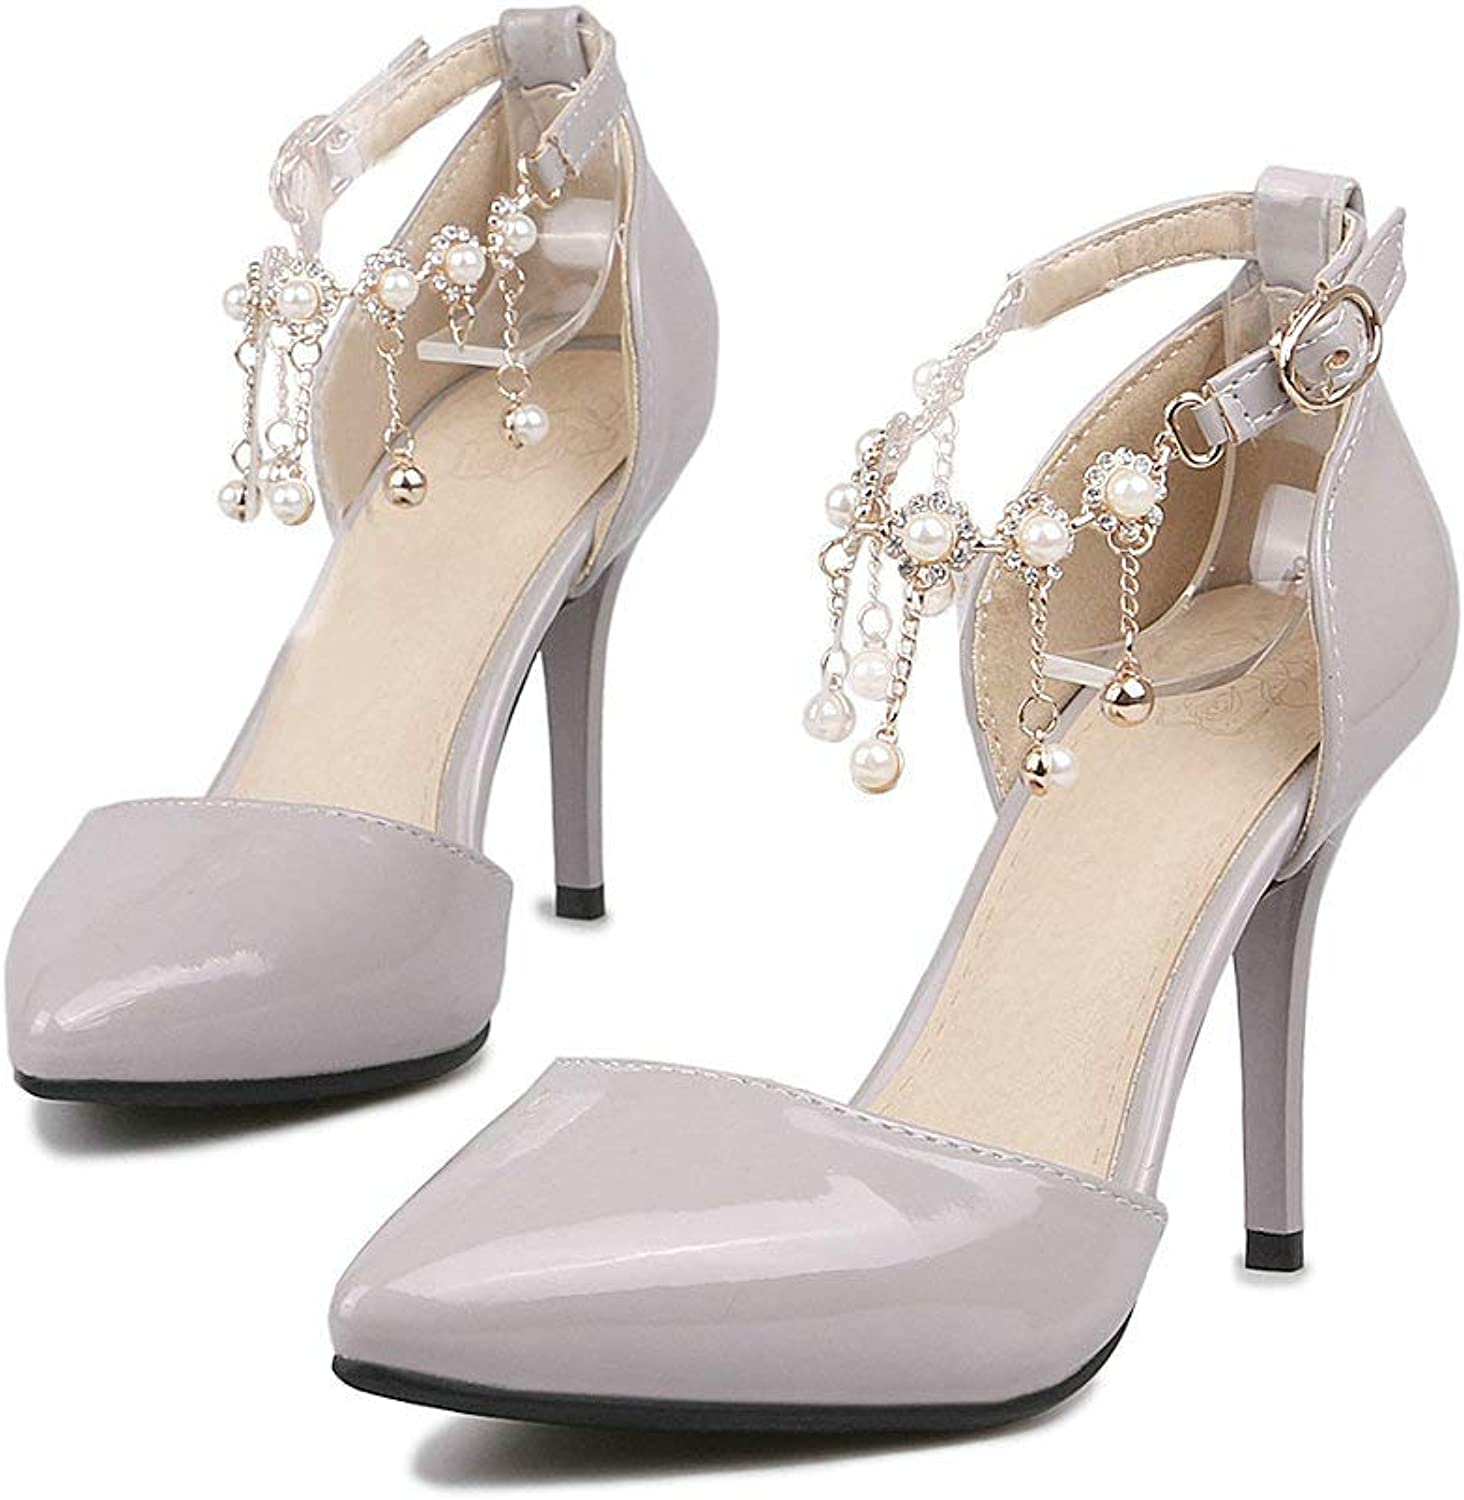 AnMengXinLing Heeled Sandals Women Ankle Strap Stiletto High Heel Closed Pointed Toe Fringe Rhinestone Leather Dress Party Wedding Bridals Pumps Red Plus Size